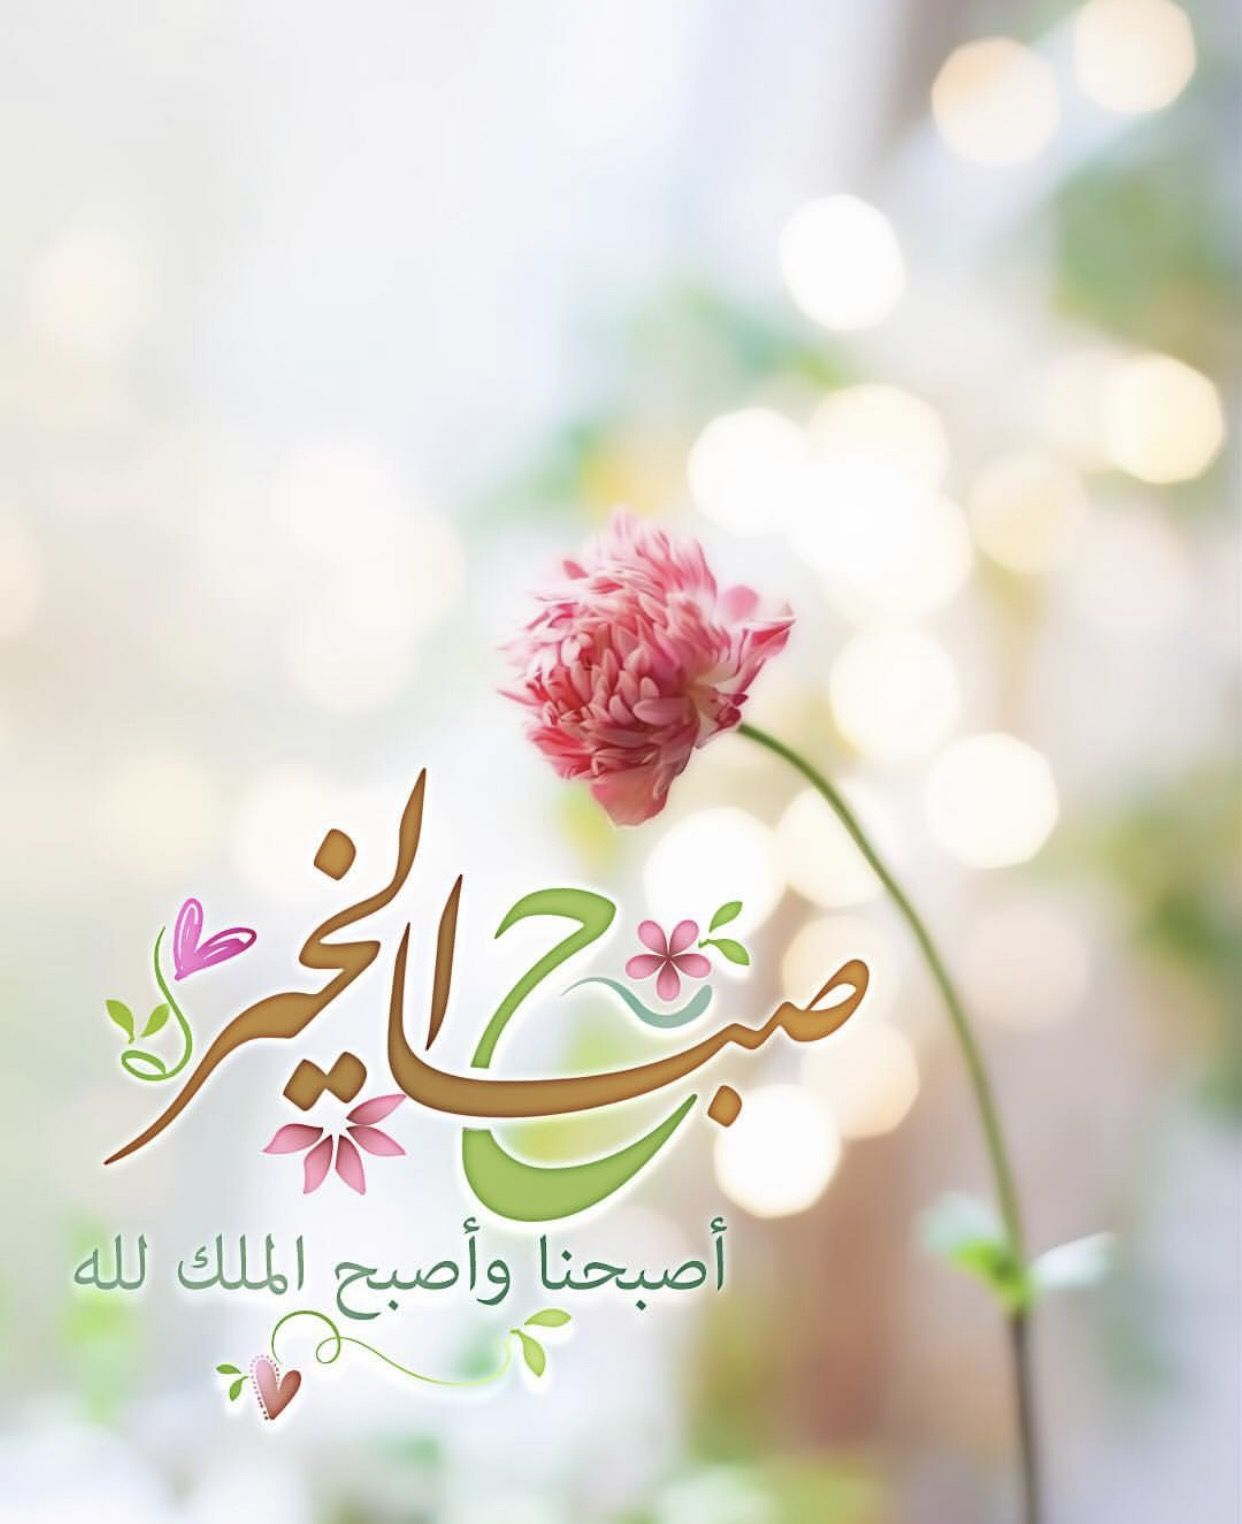 Pin By Rn Rn On صباح الخير Beautiful Morning Messages Good Morning Arabic Happy Birthday Pictures